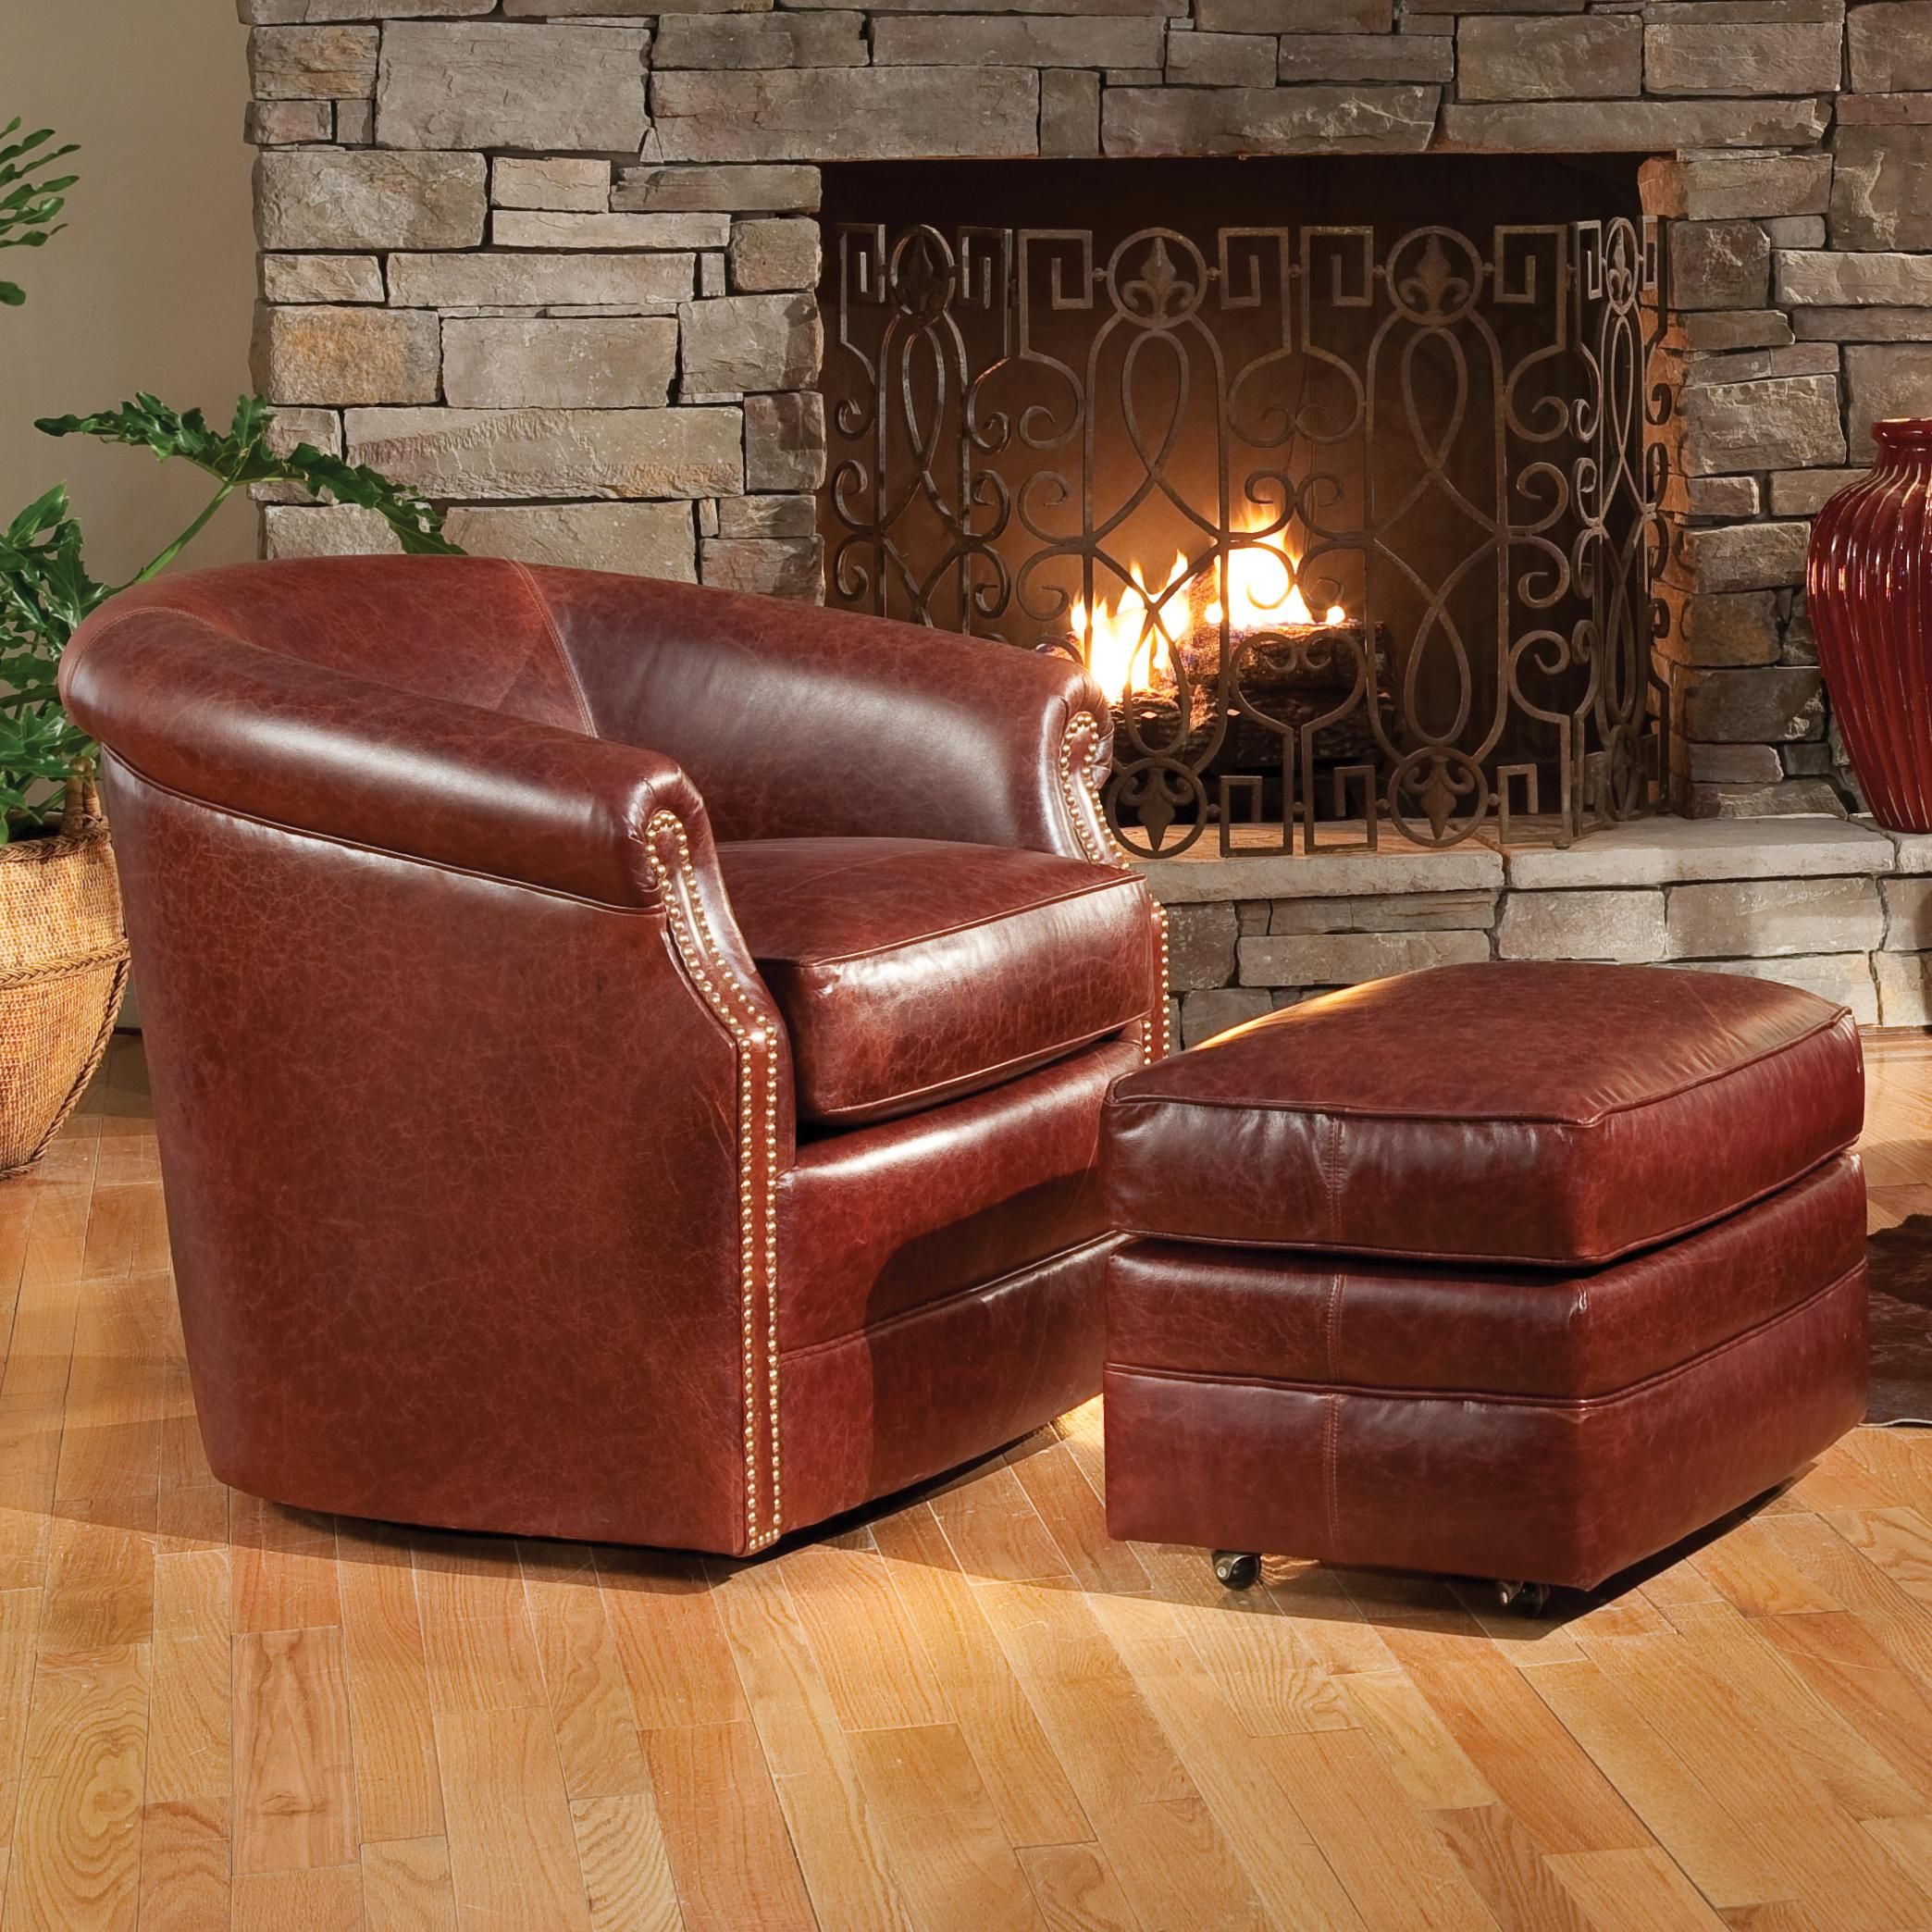 Smith brothers accent chairs and ottomans sb 820l 56 for Swivel accent chairs with arms